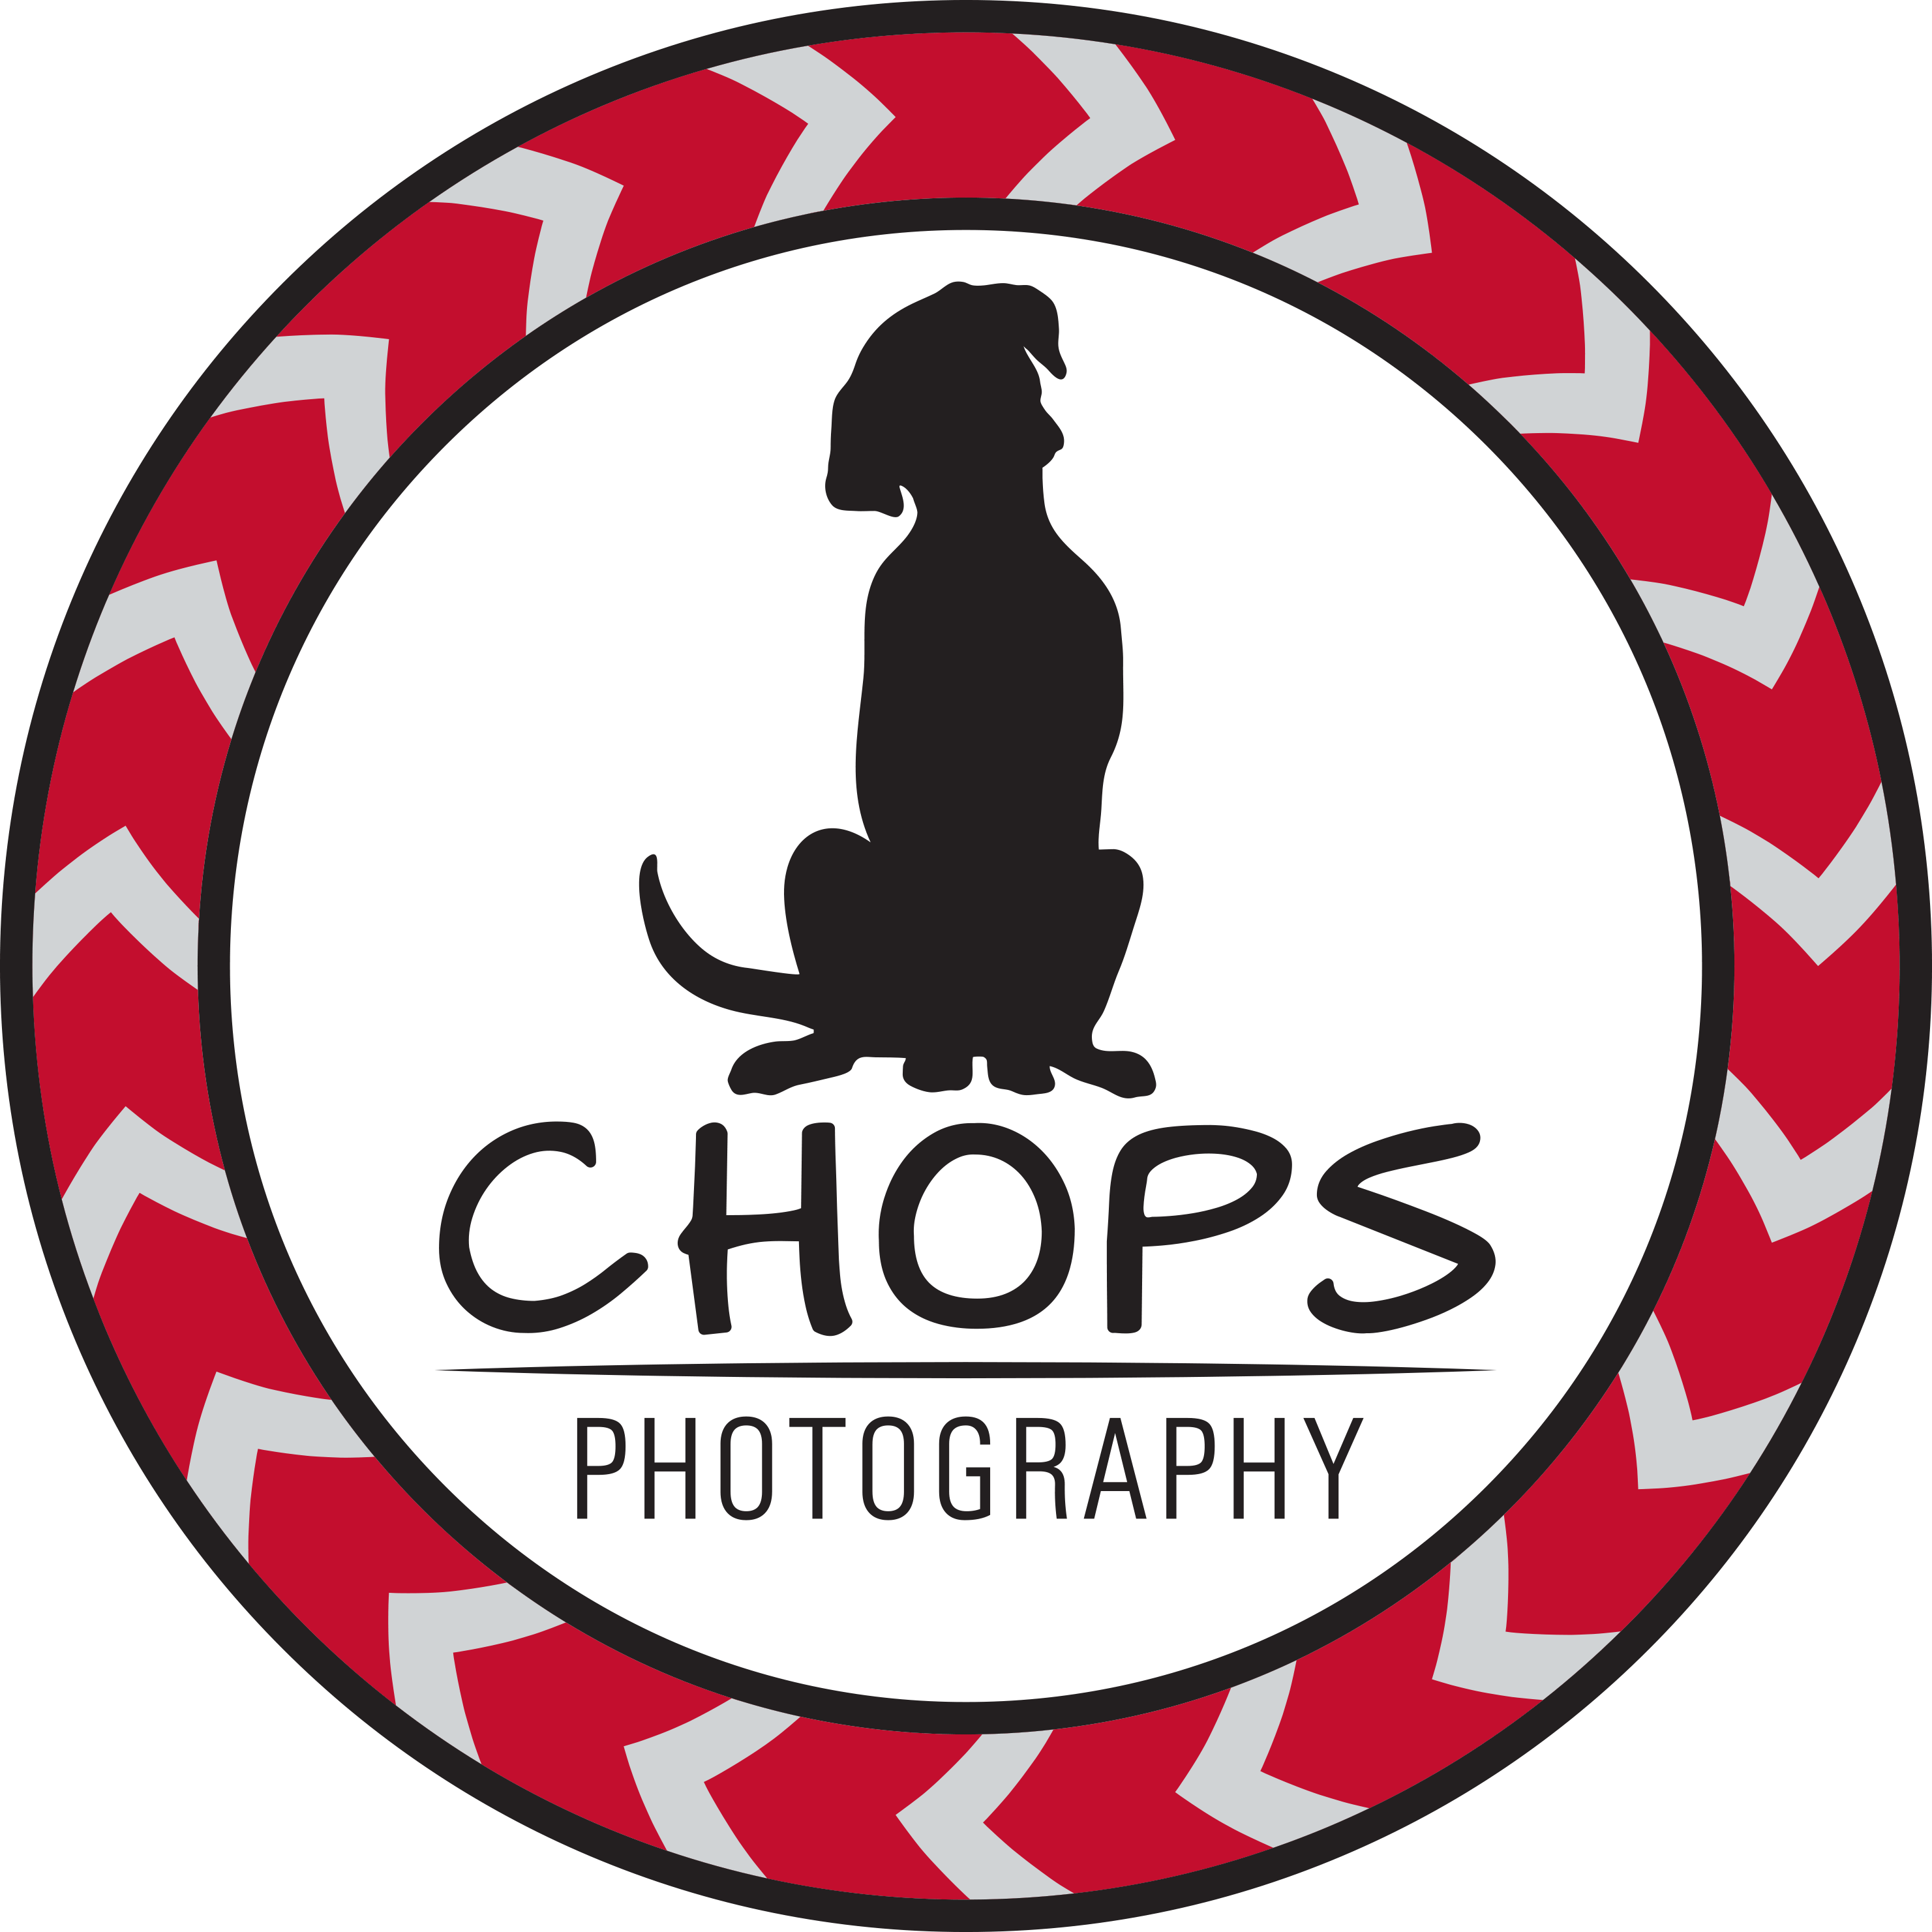 Chops Photography